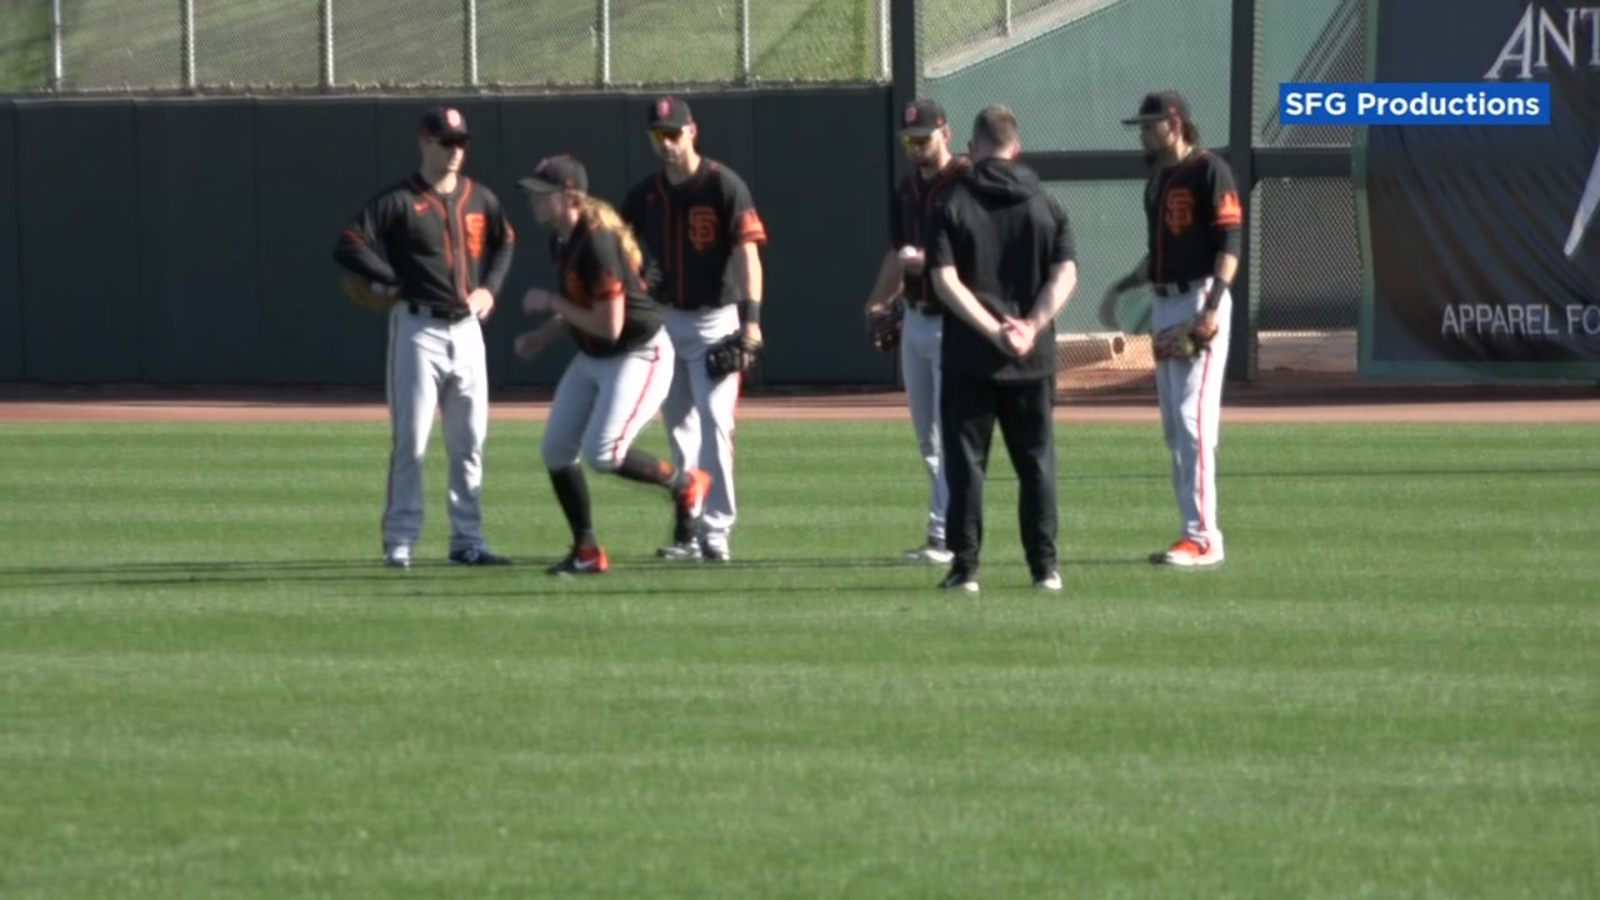 Spring Training 2020: San Francisco Giants, Oakland A's hold second full-squad workouts